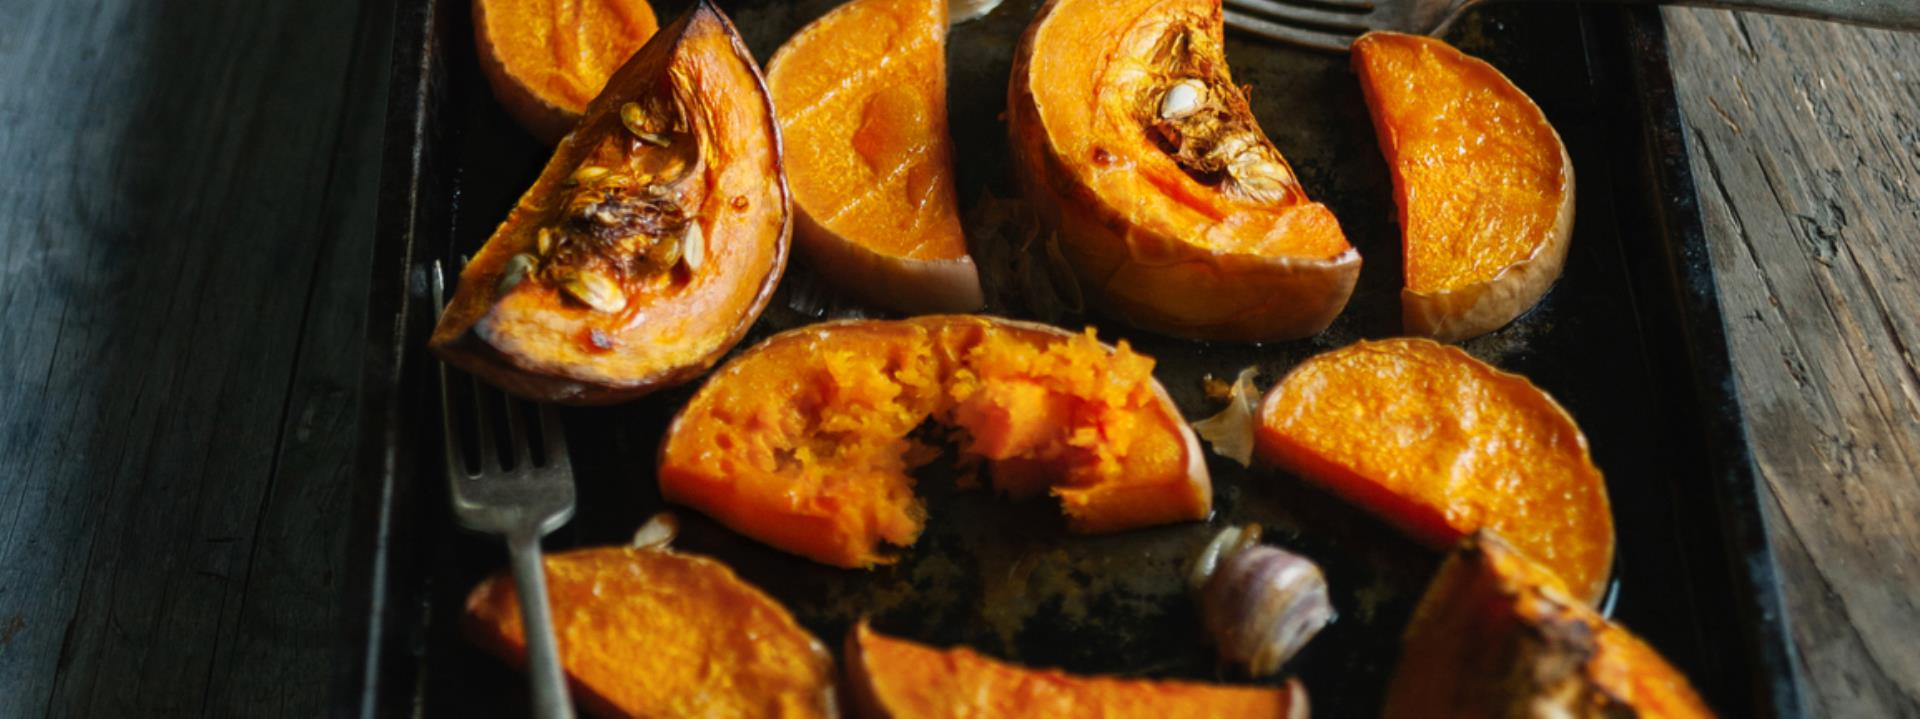 Roasted Squash And Baby Kale Salad Furthermore